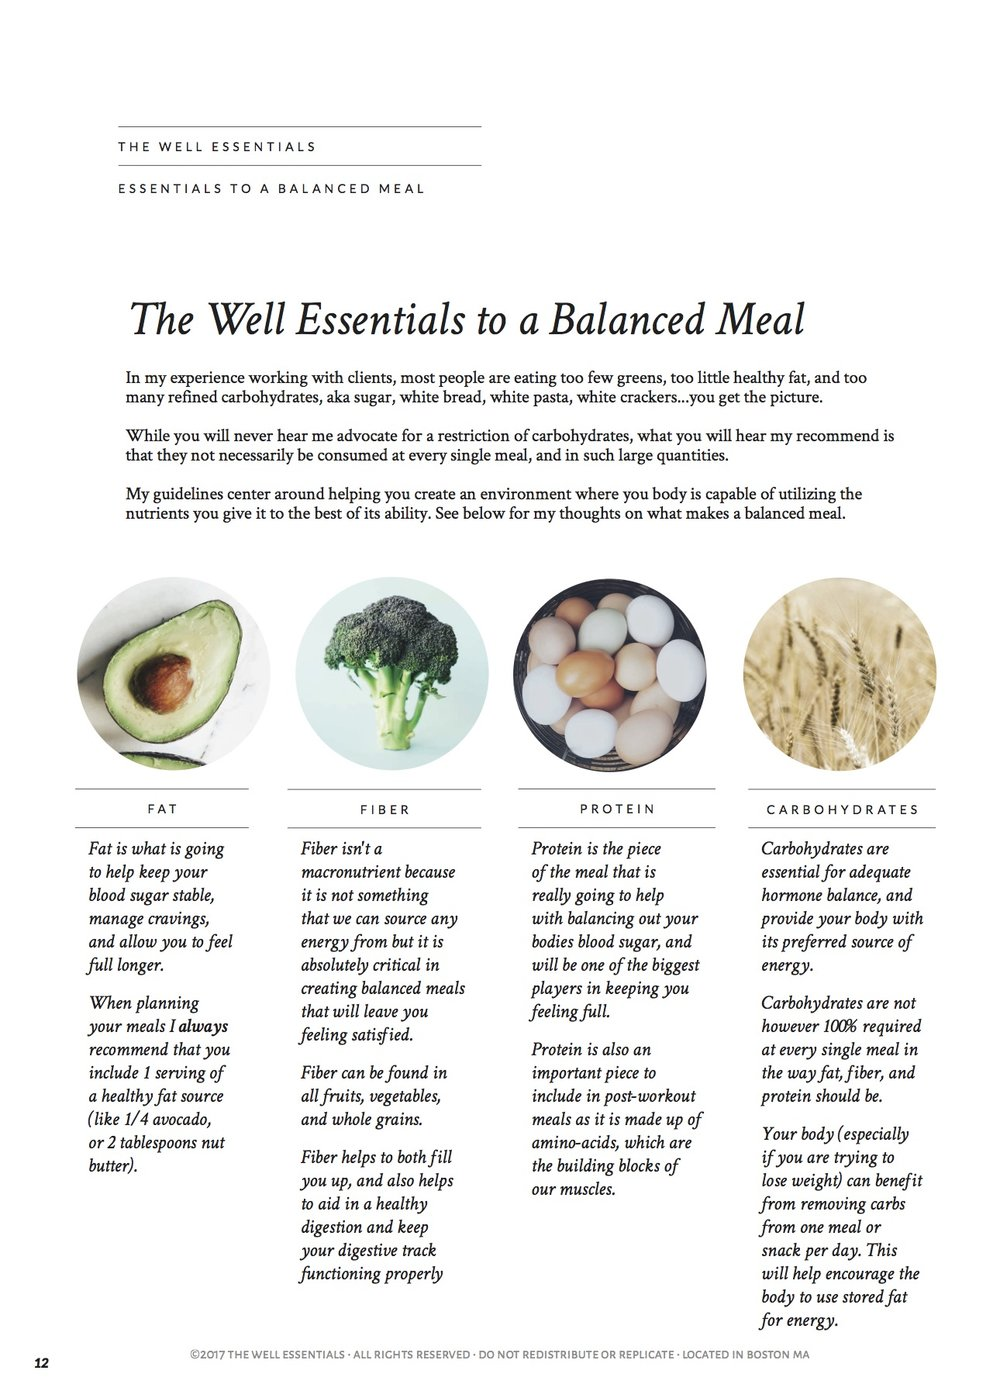 The Well Essentials Healthy Meal Planning Guide